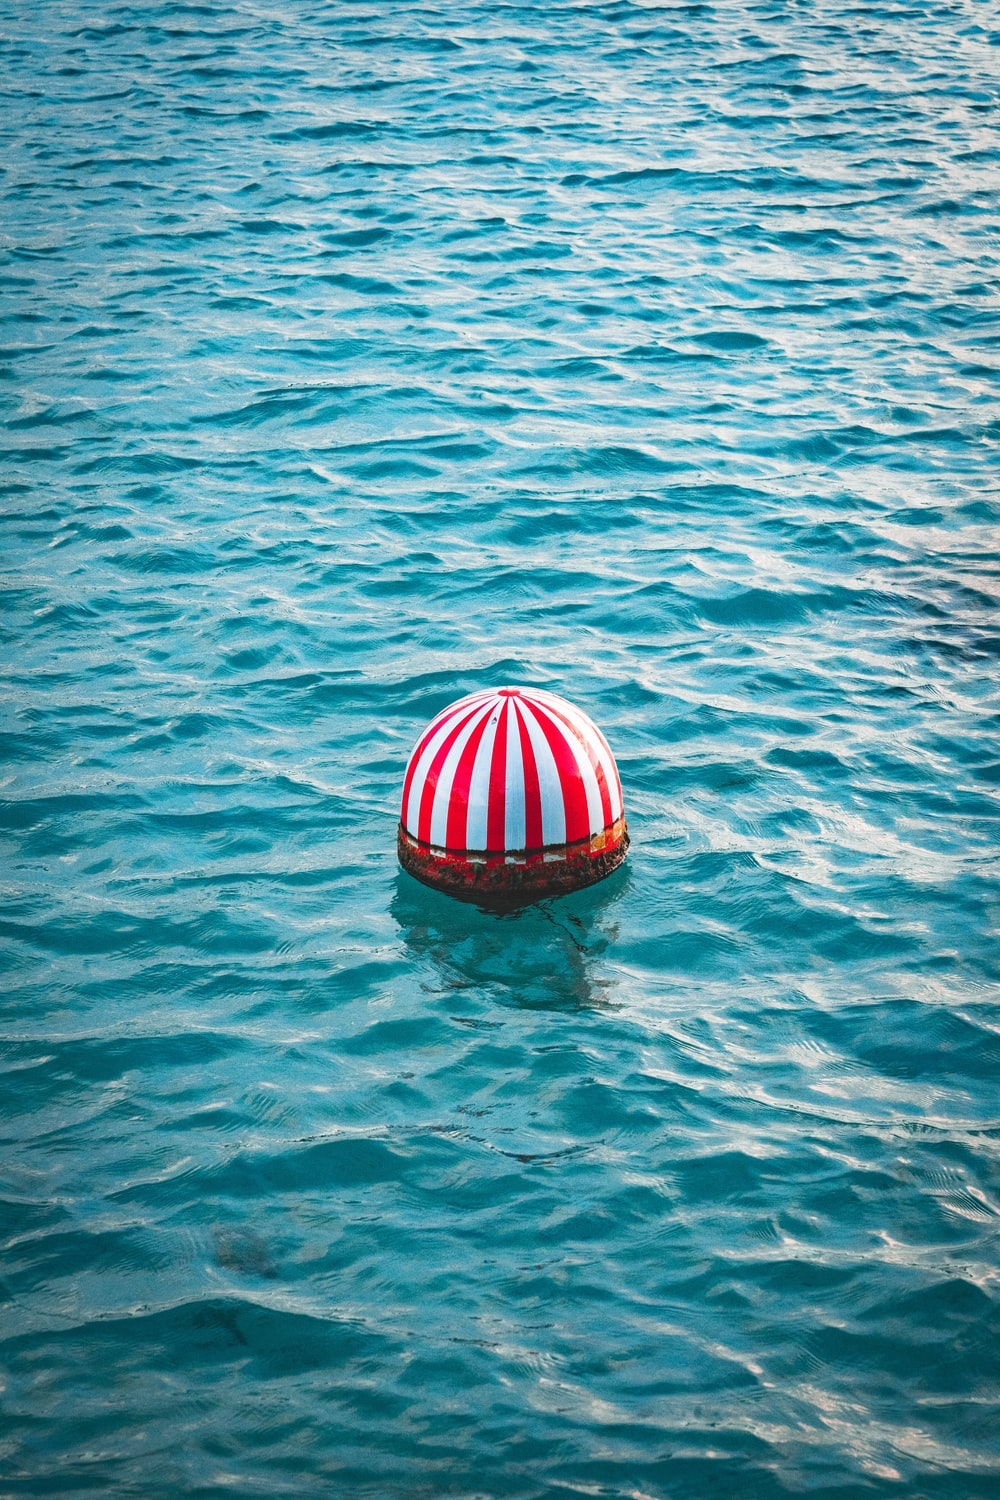 red and white buoy on body of water during daytime